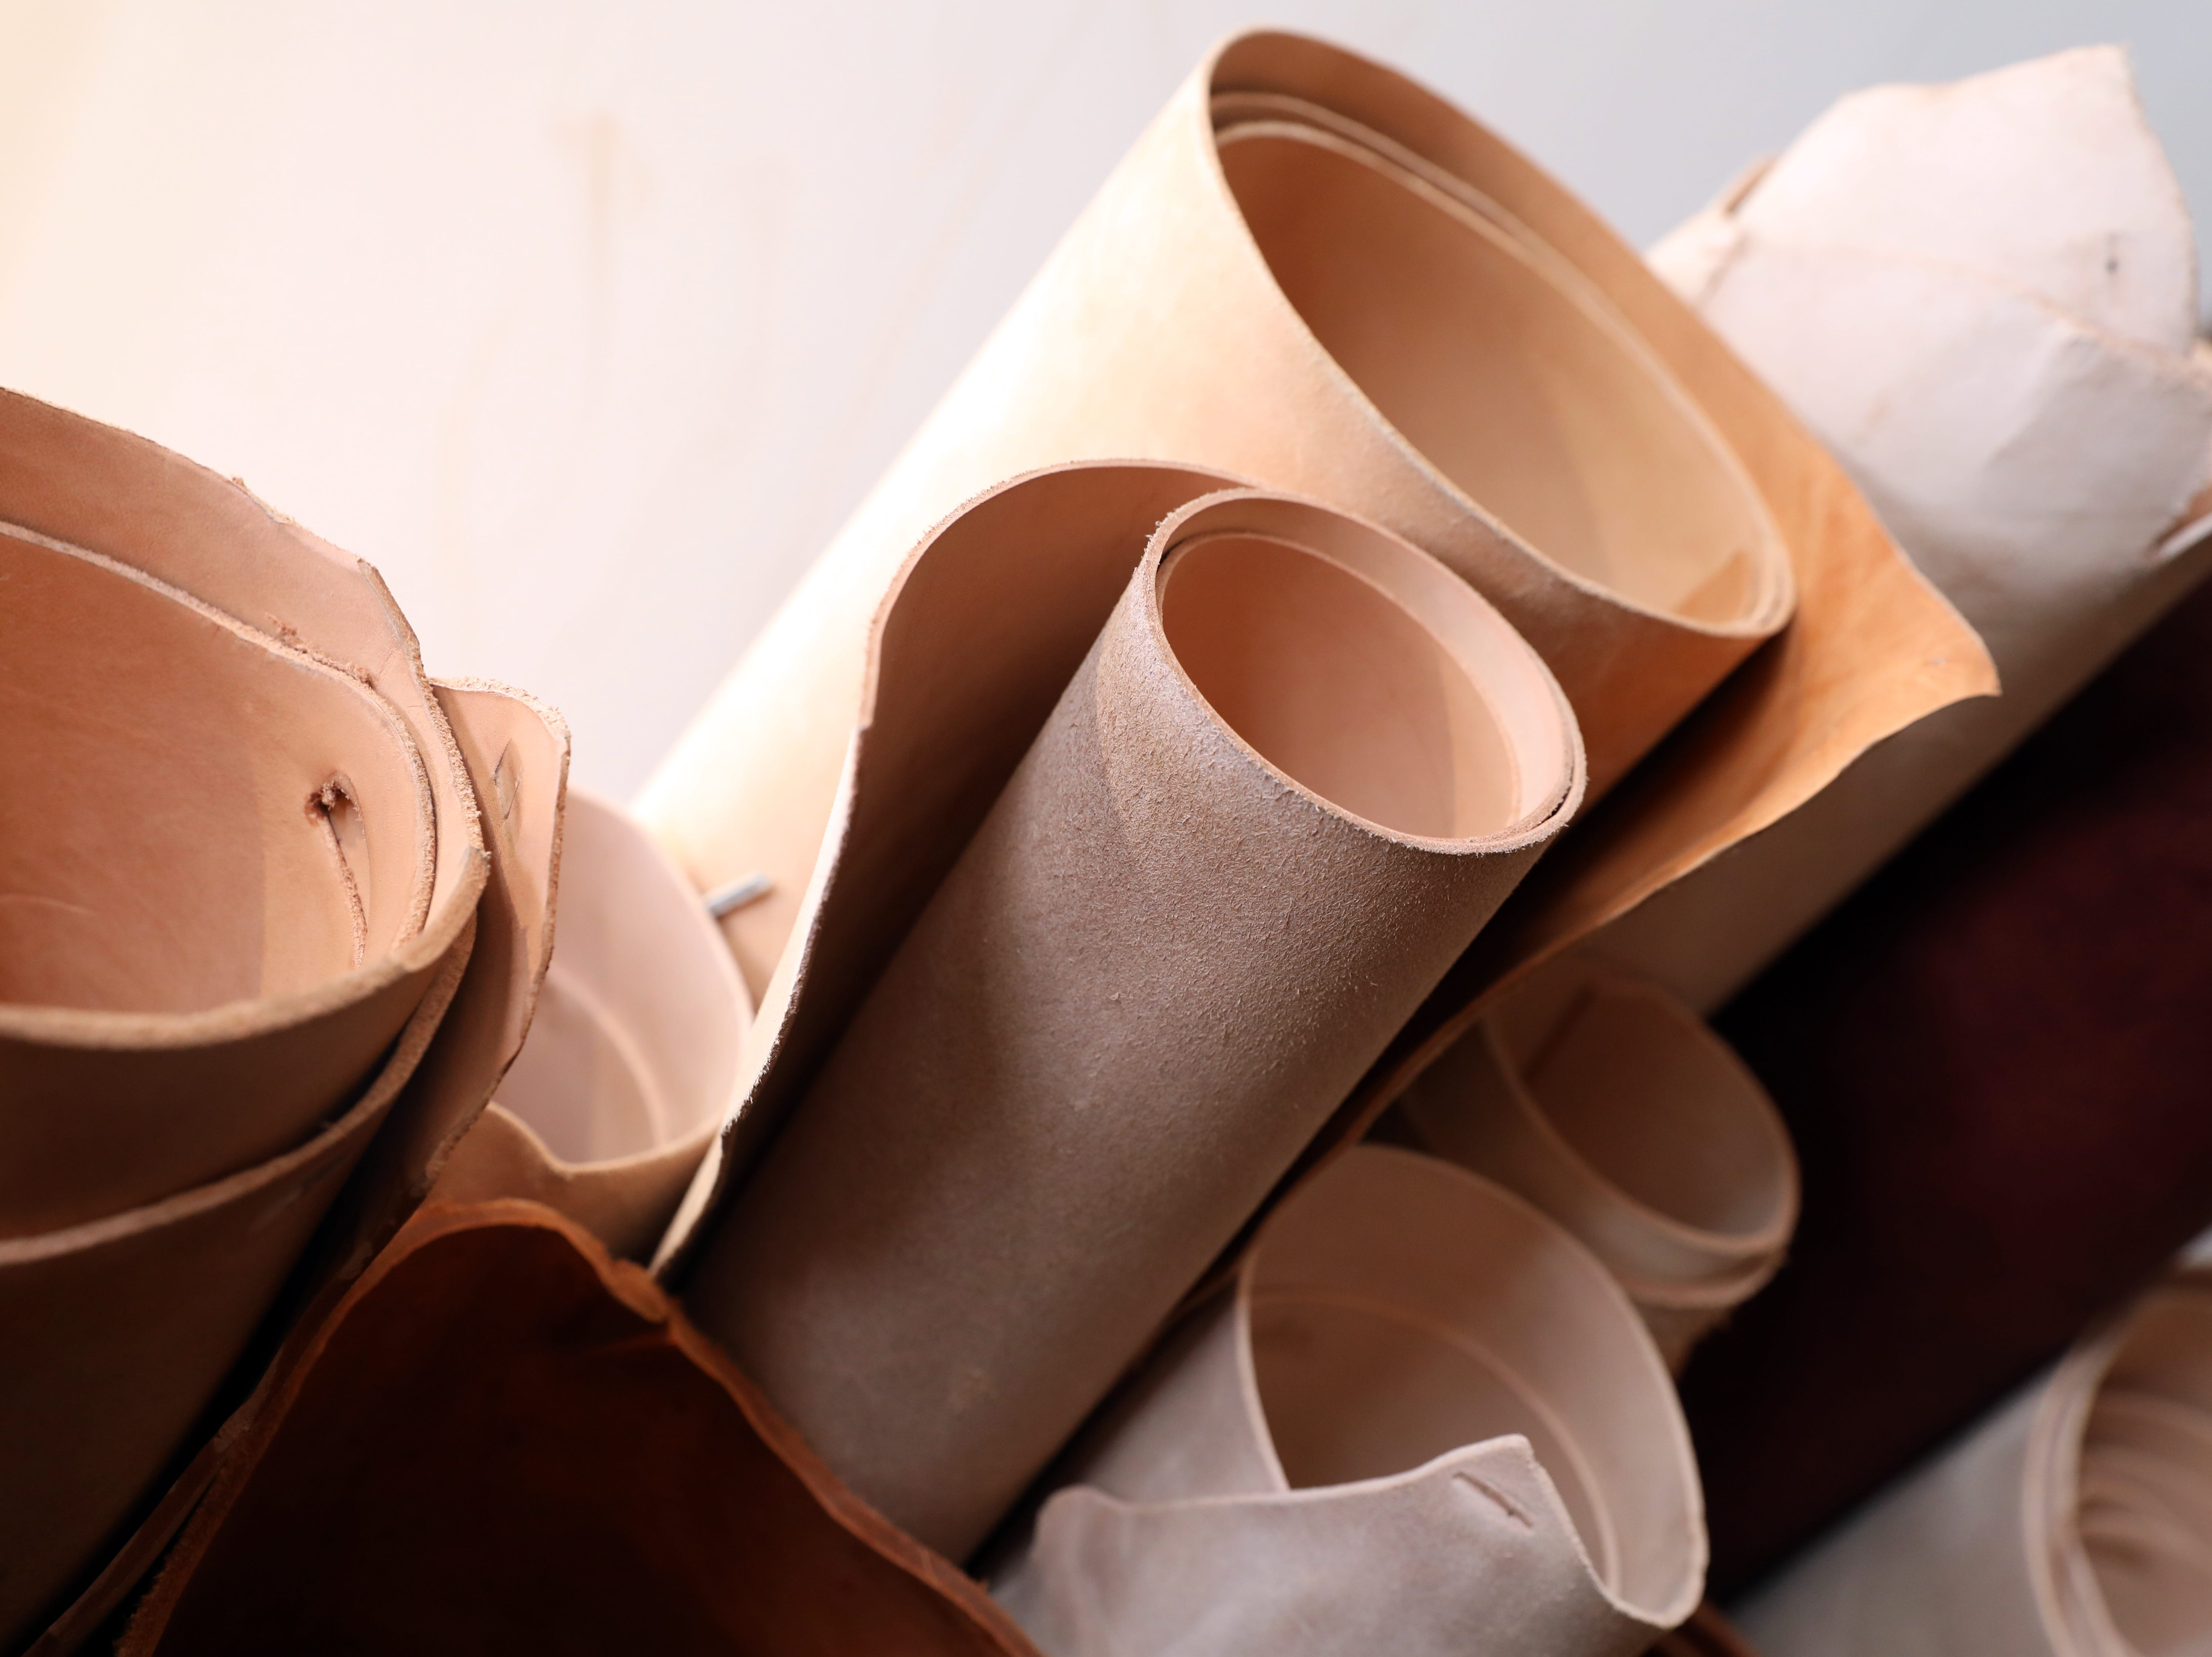 Rolls of leather at River Ridge Leather Company in Roscoe Village.